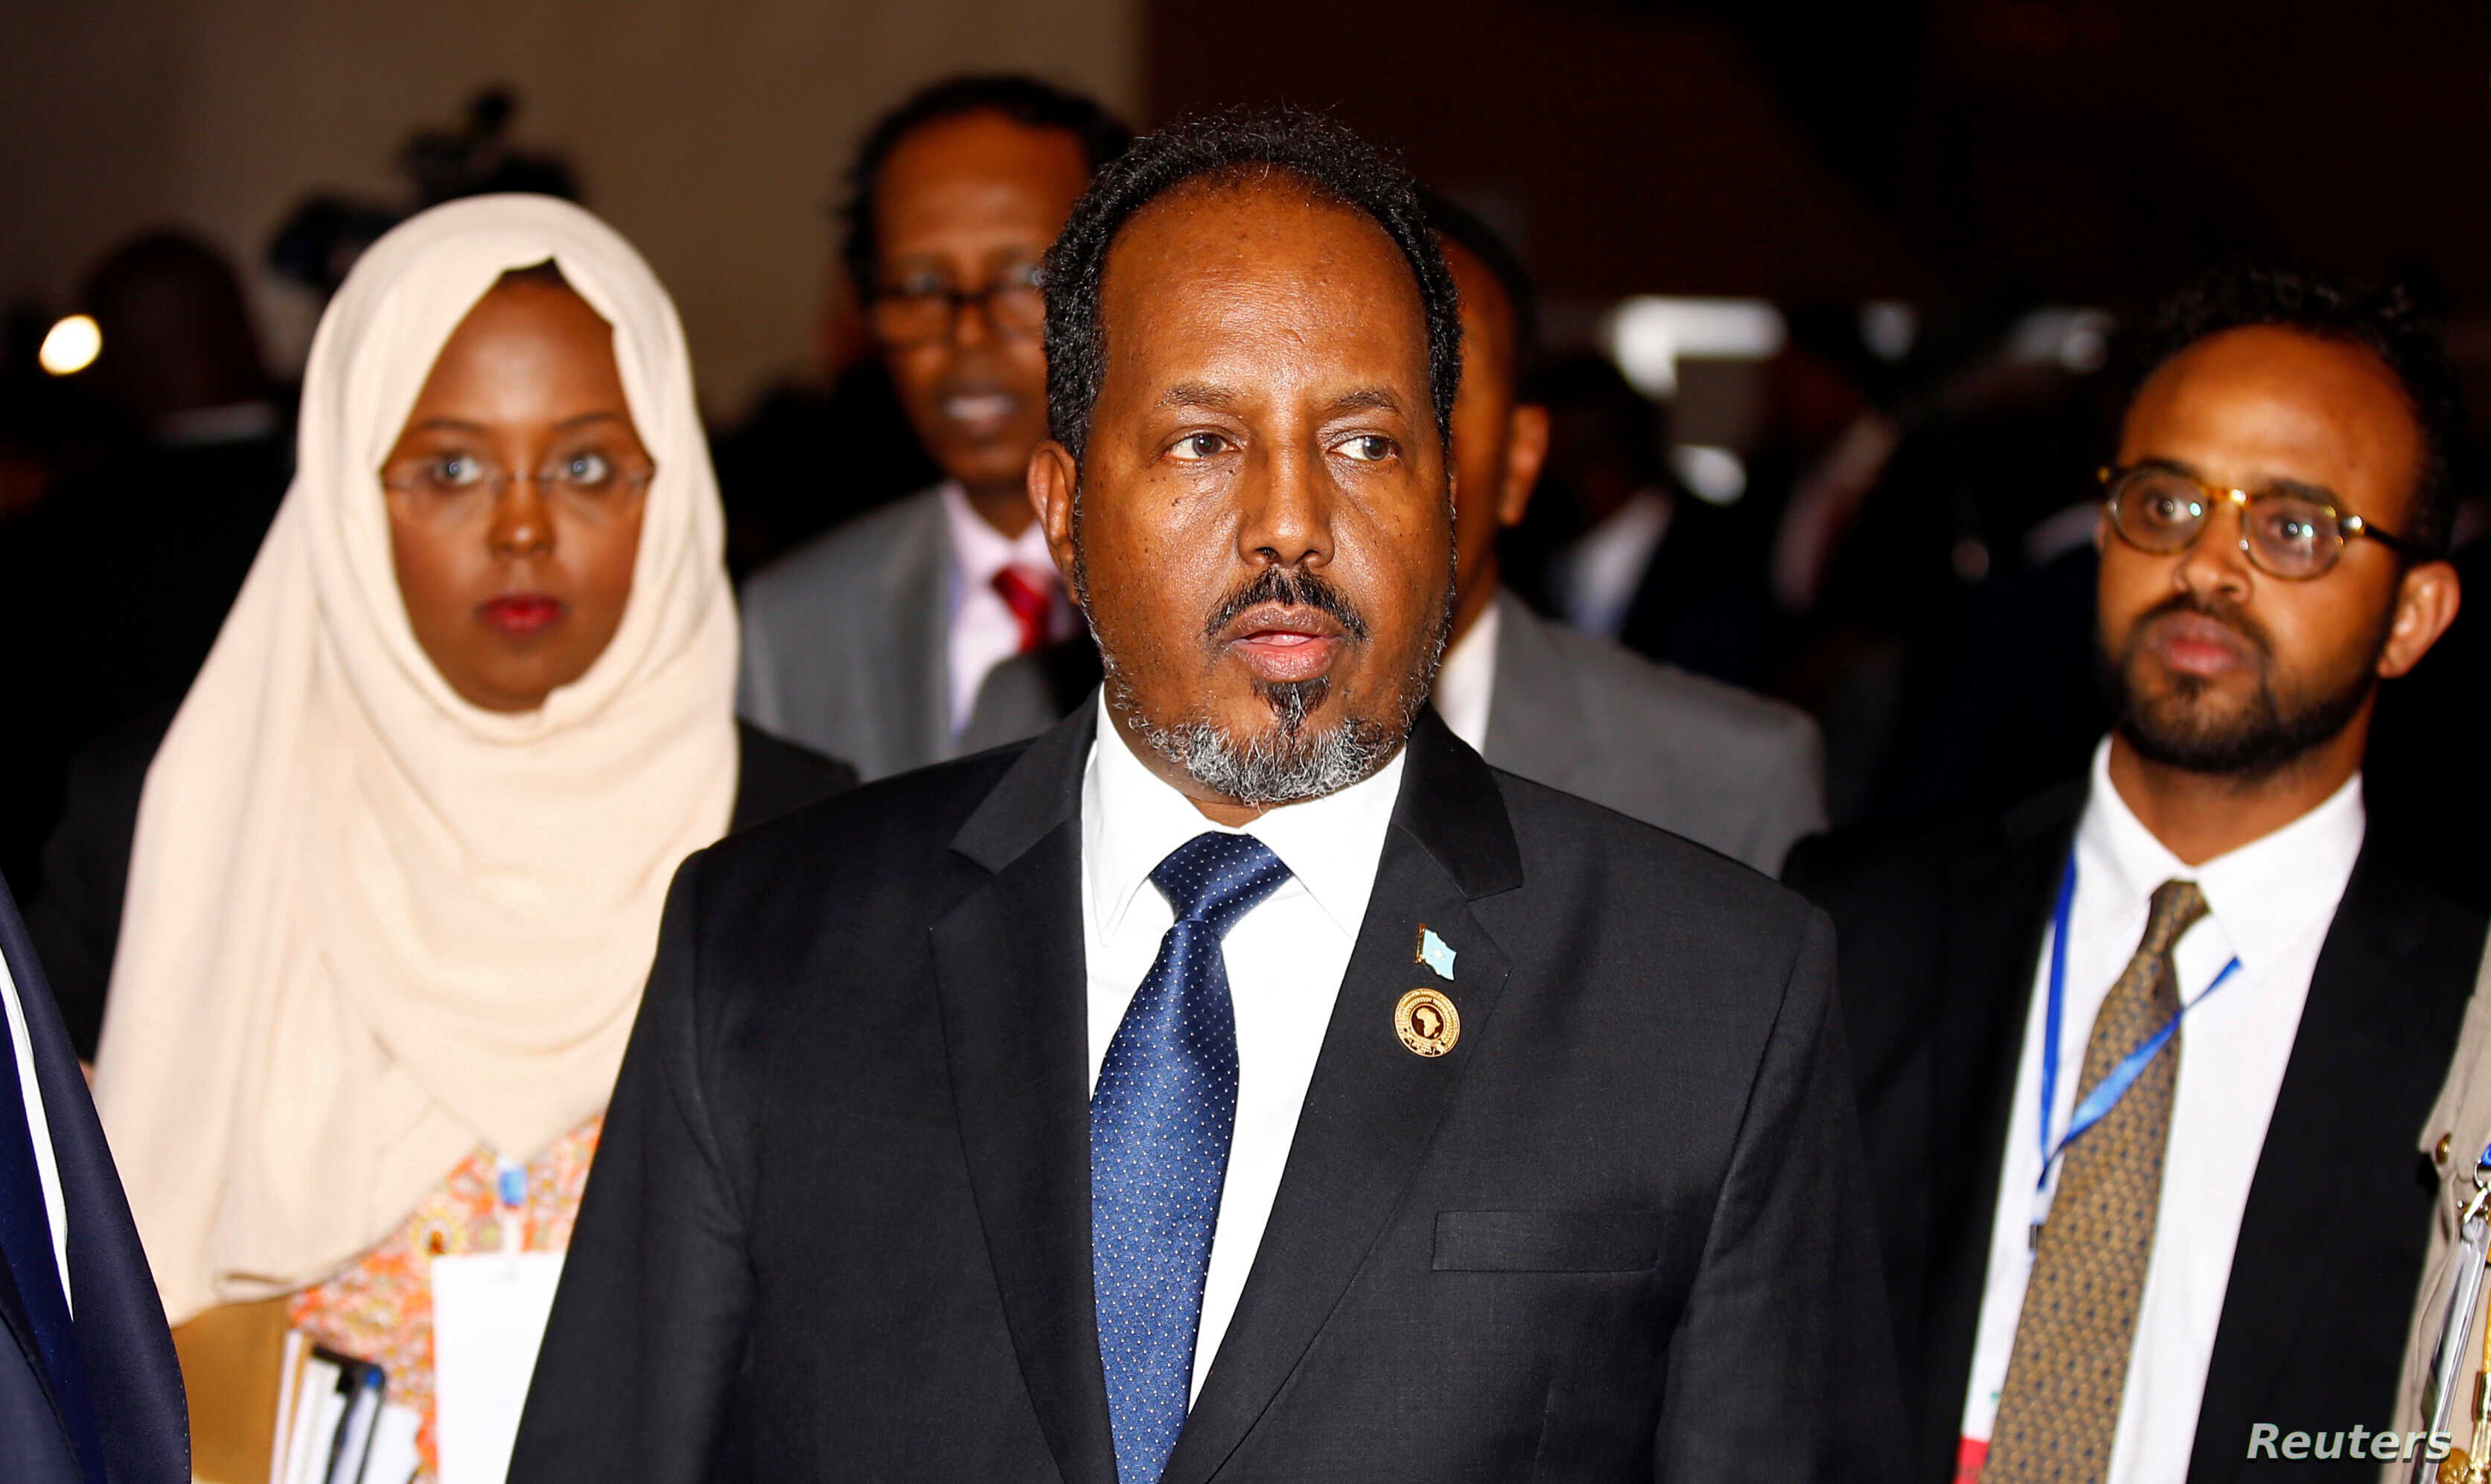 Somalia President Focuses on Security, Stability Ahead of Elections